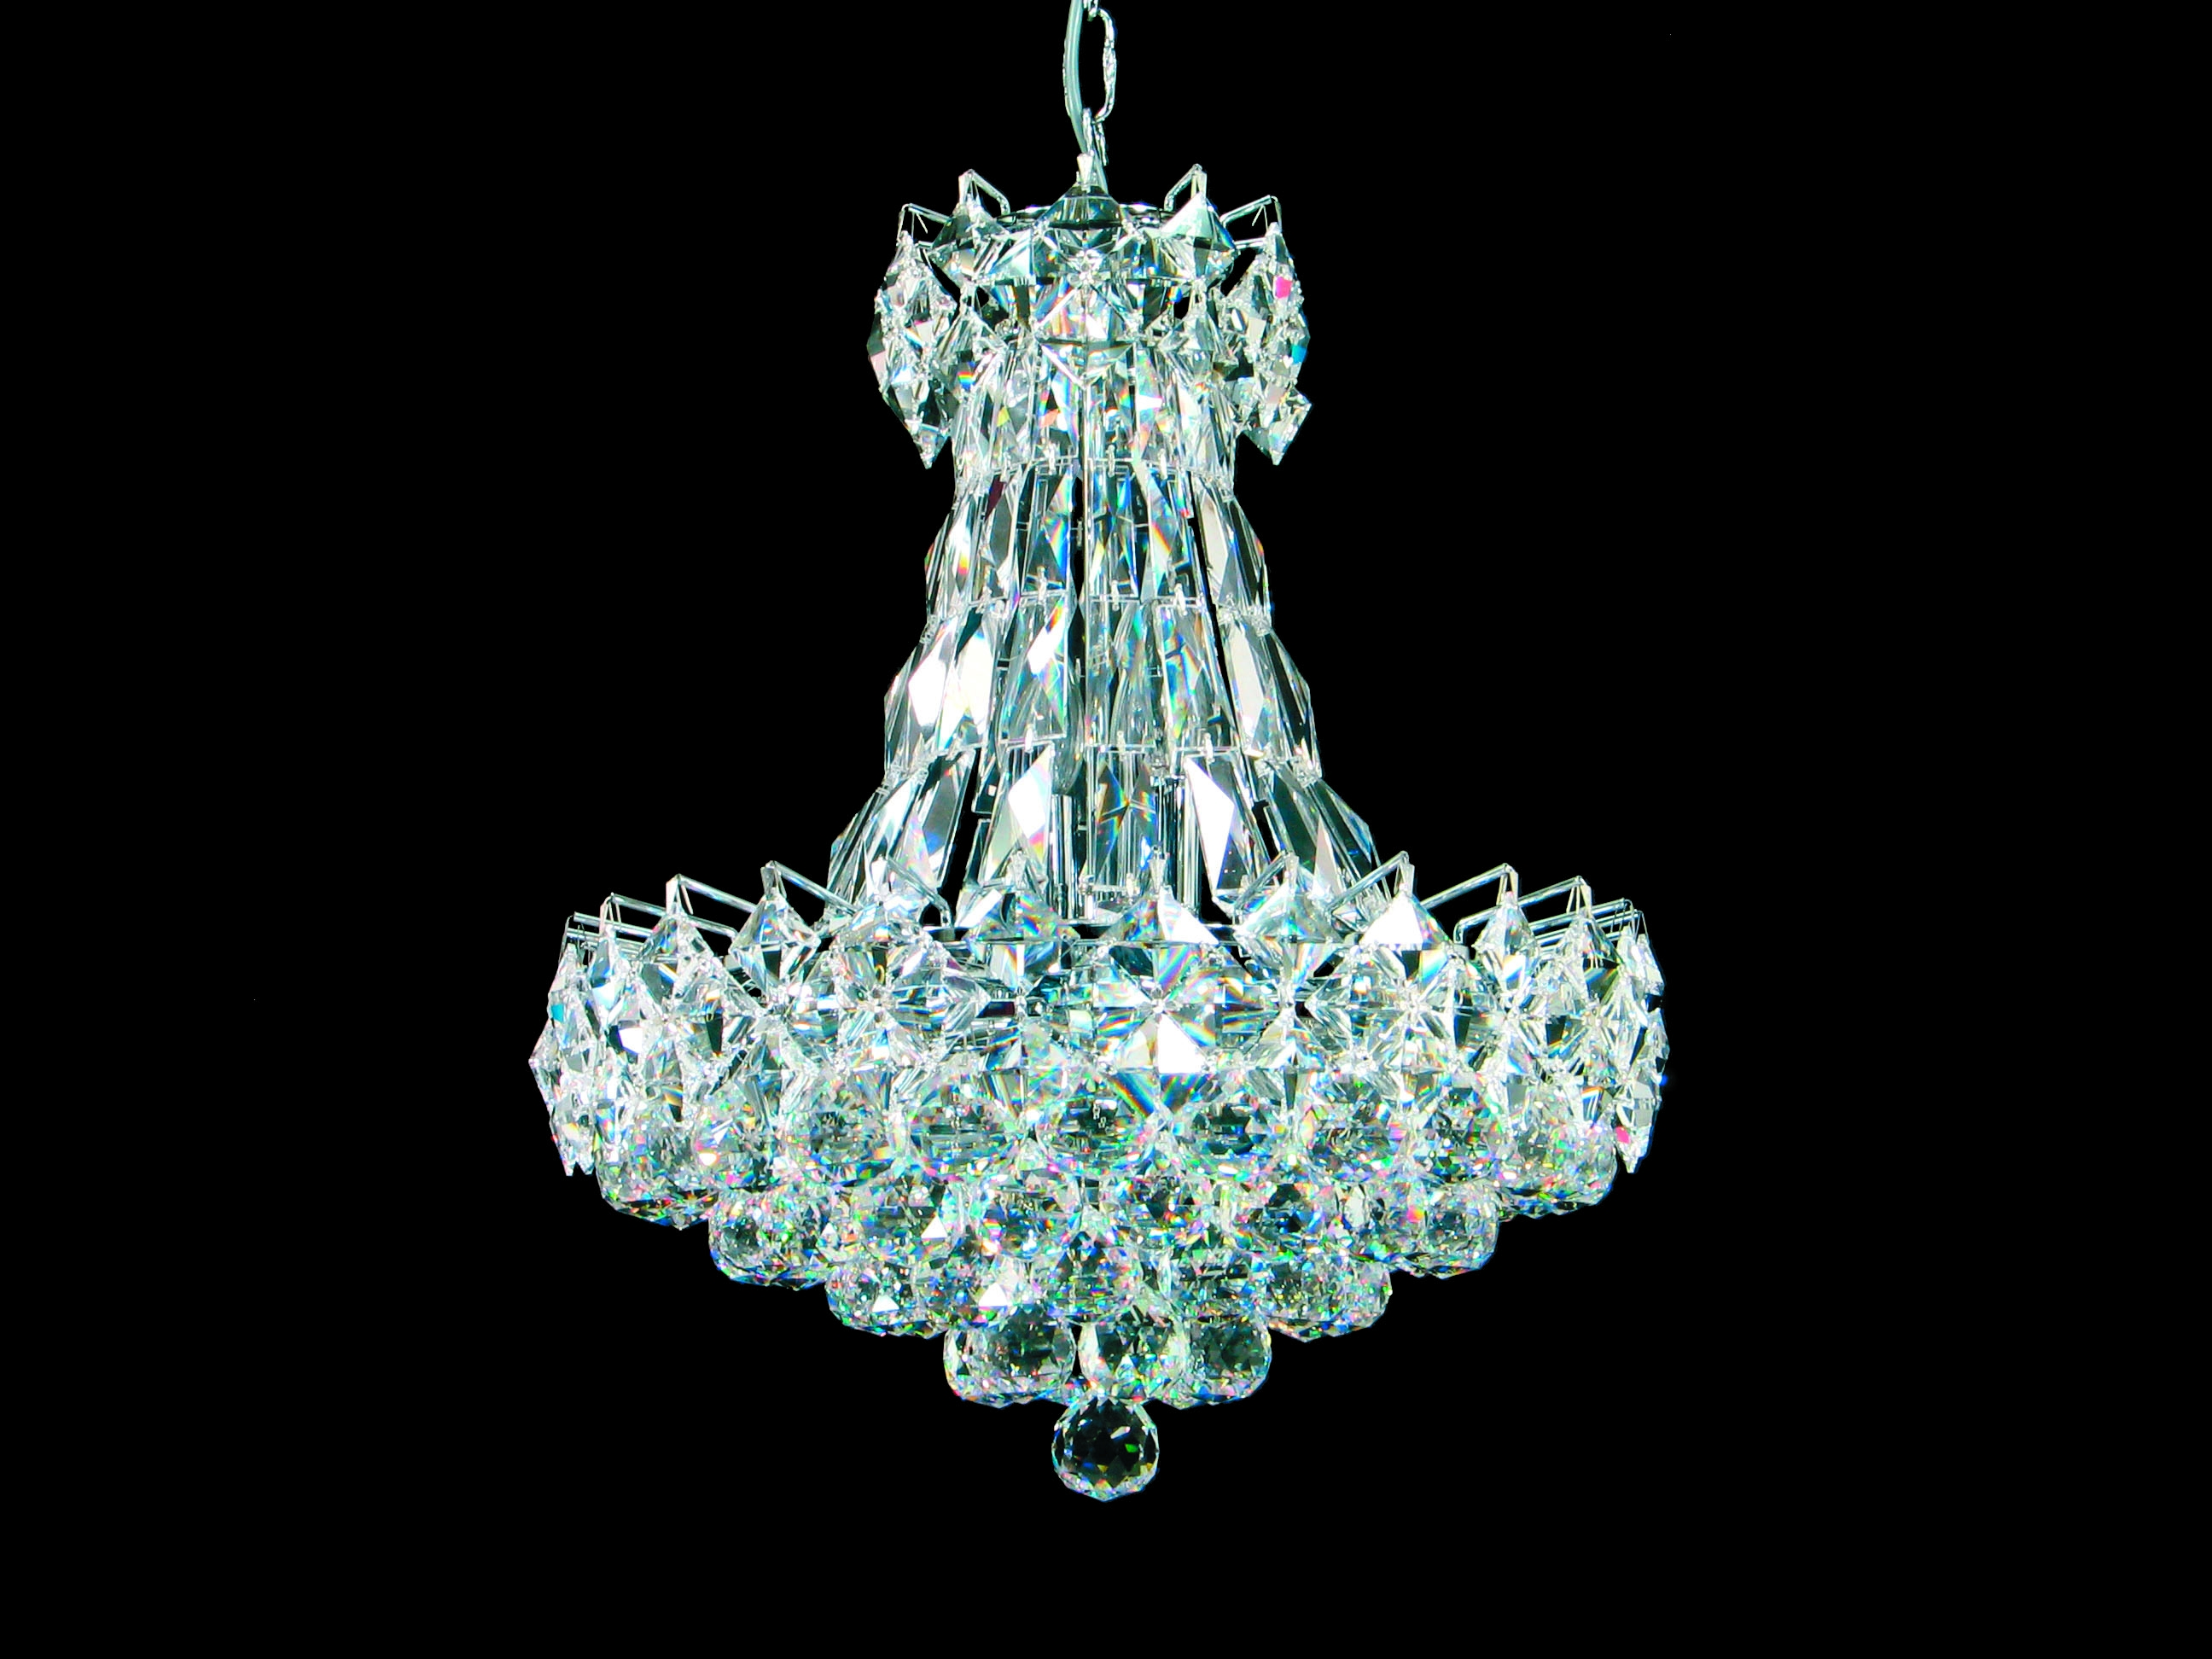 Unique Crystal Chandeliers Home Decor With Regard To Lead Crystal Chandelier (Image 15 of 15)